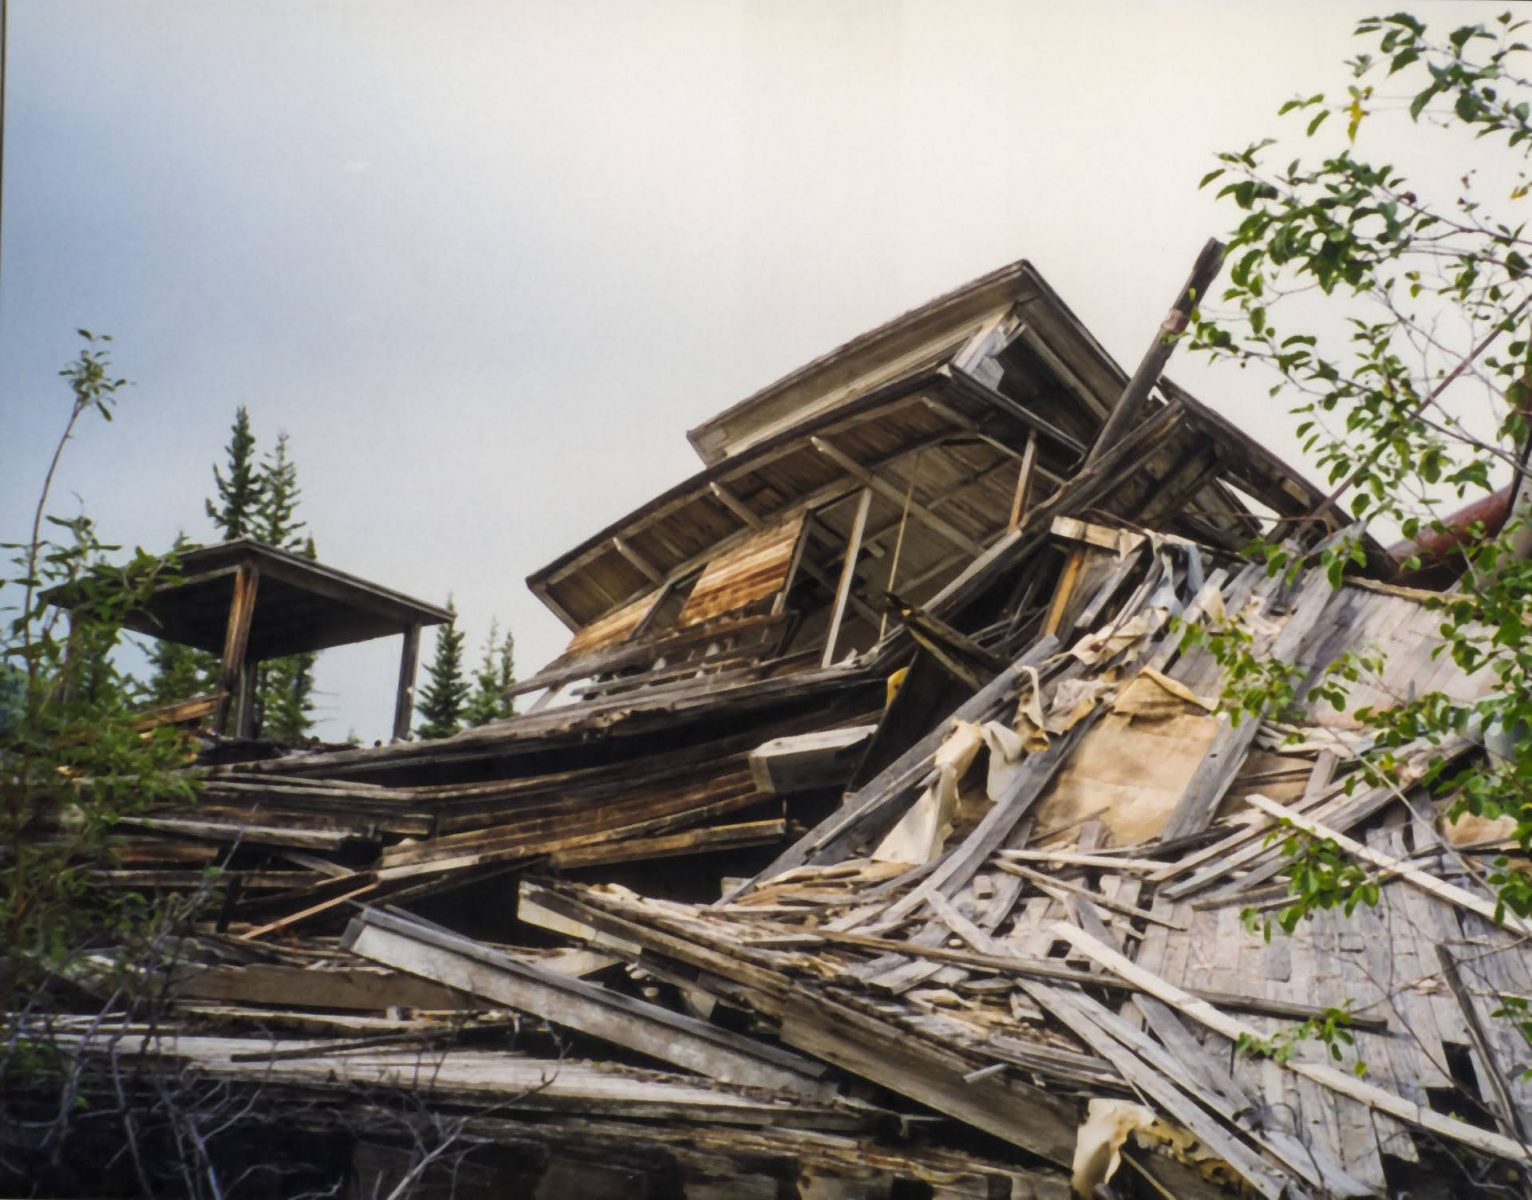 A unique thing to do in dawson city is visit the paddle wheeler graveyard, a collection of crushed old ships damaged by the river. A pile of crumpled wood takes up the photo, an old pilot house partially collapsed can be seen at the top of the pile